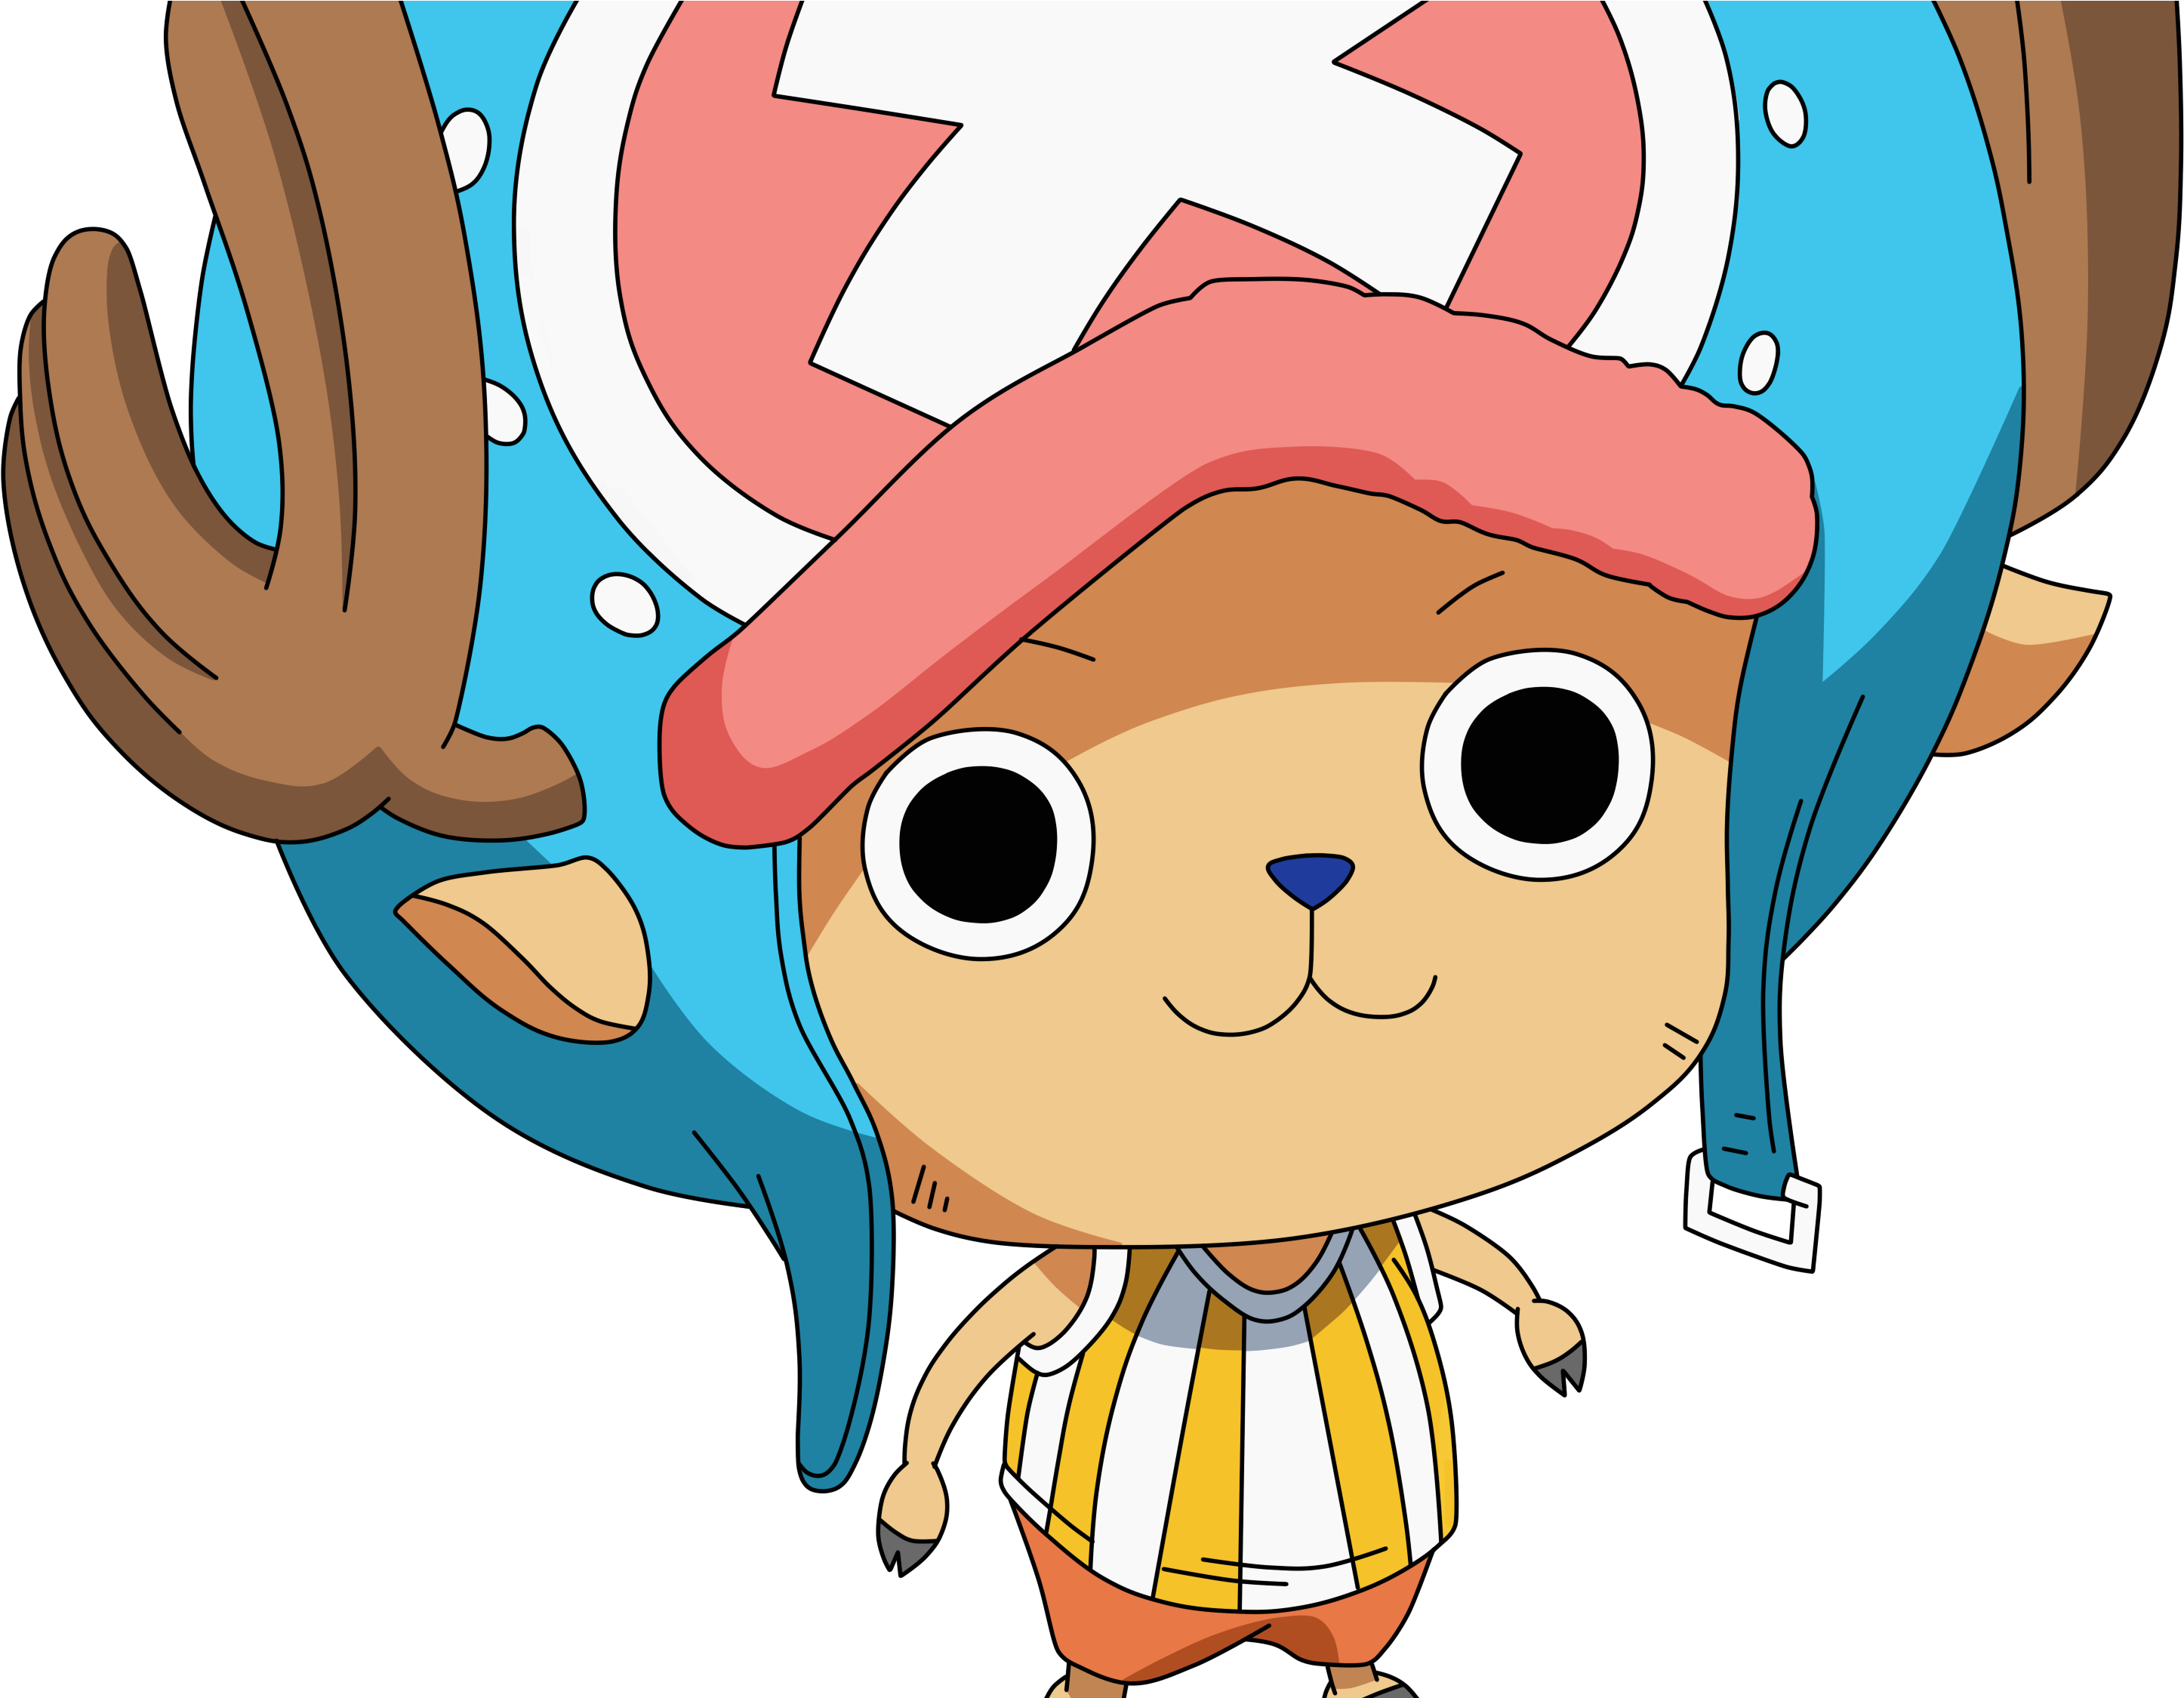 hd one piece chopper wallpapers for android on wallpaper cute one piece chopper png 2893 2249